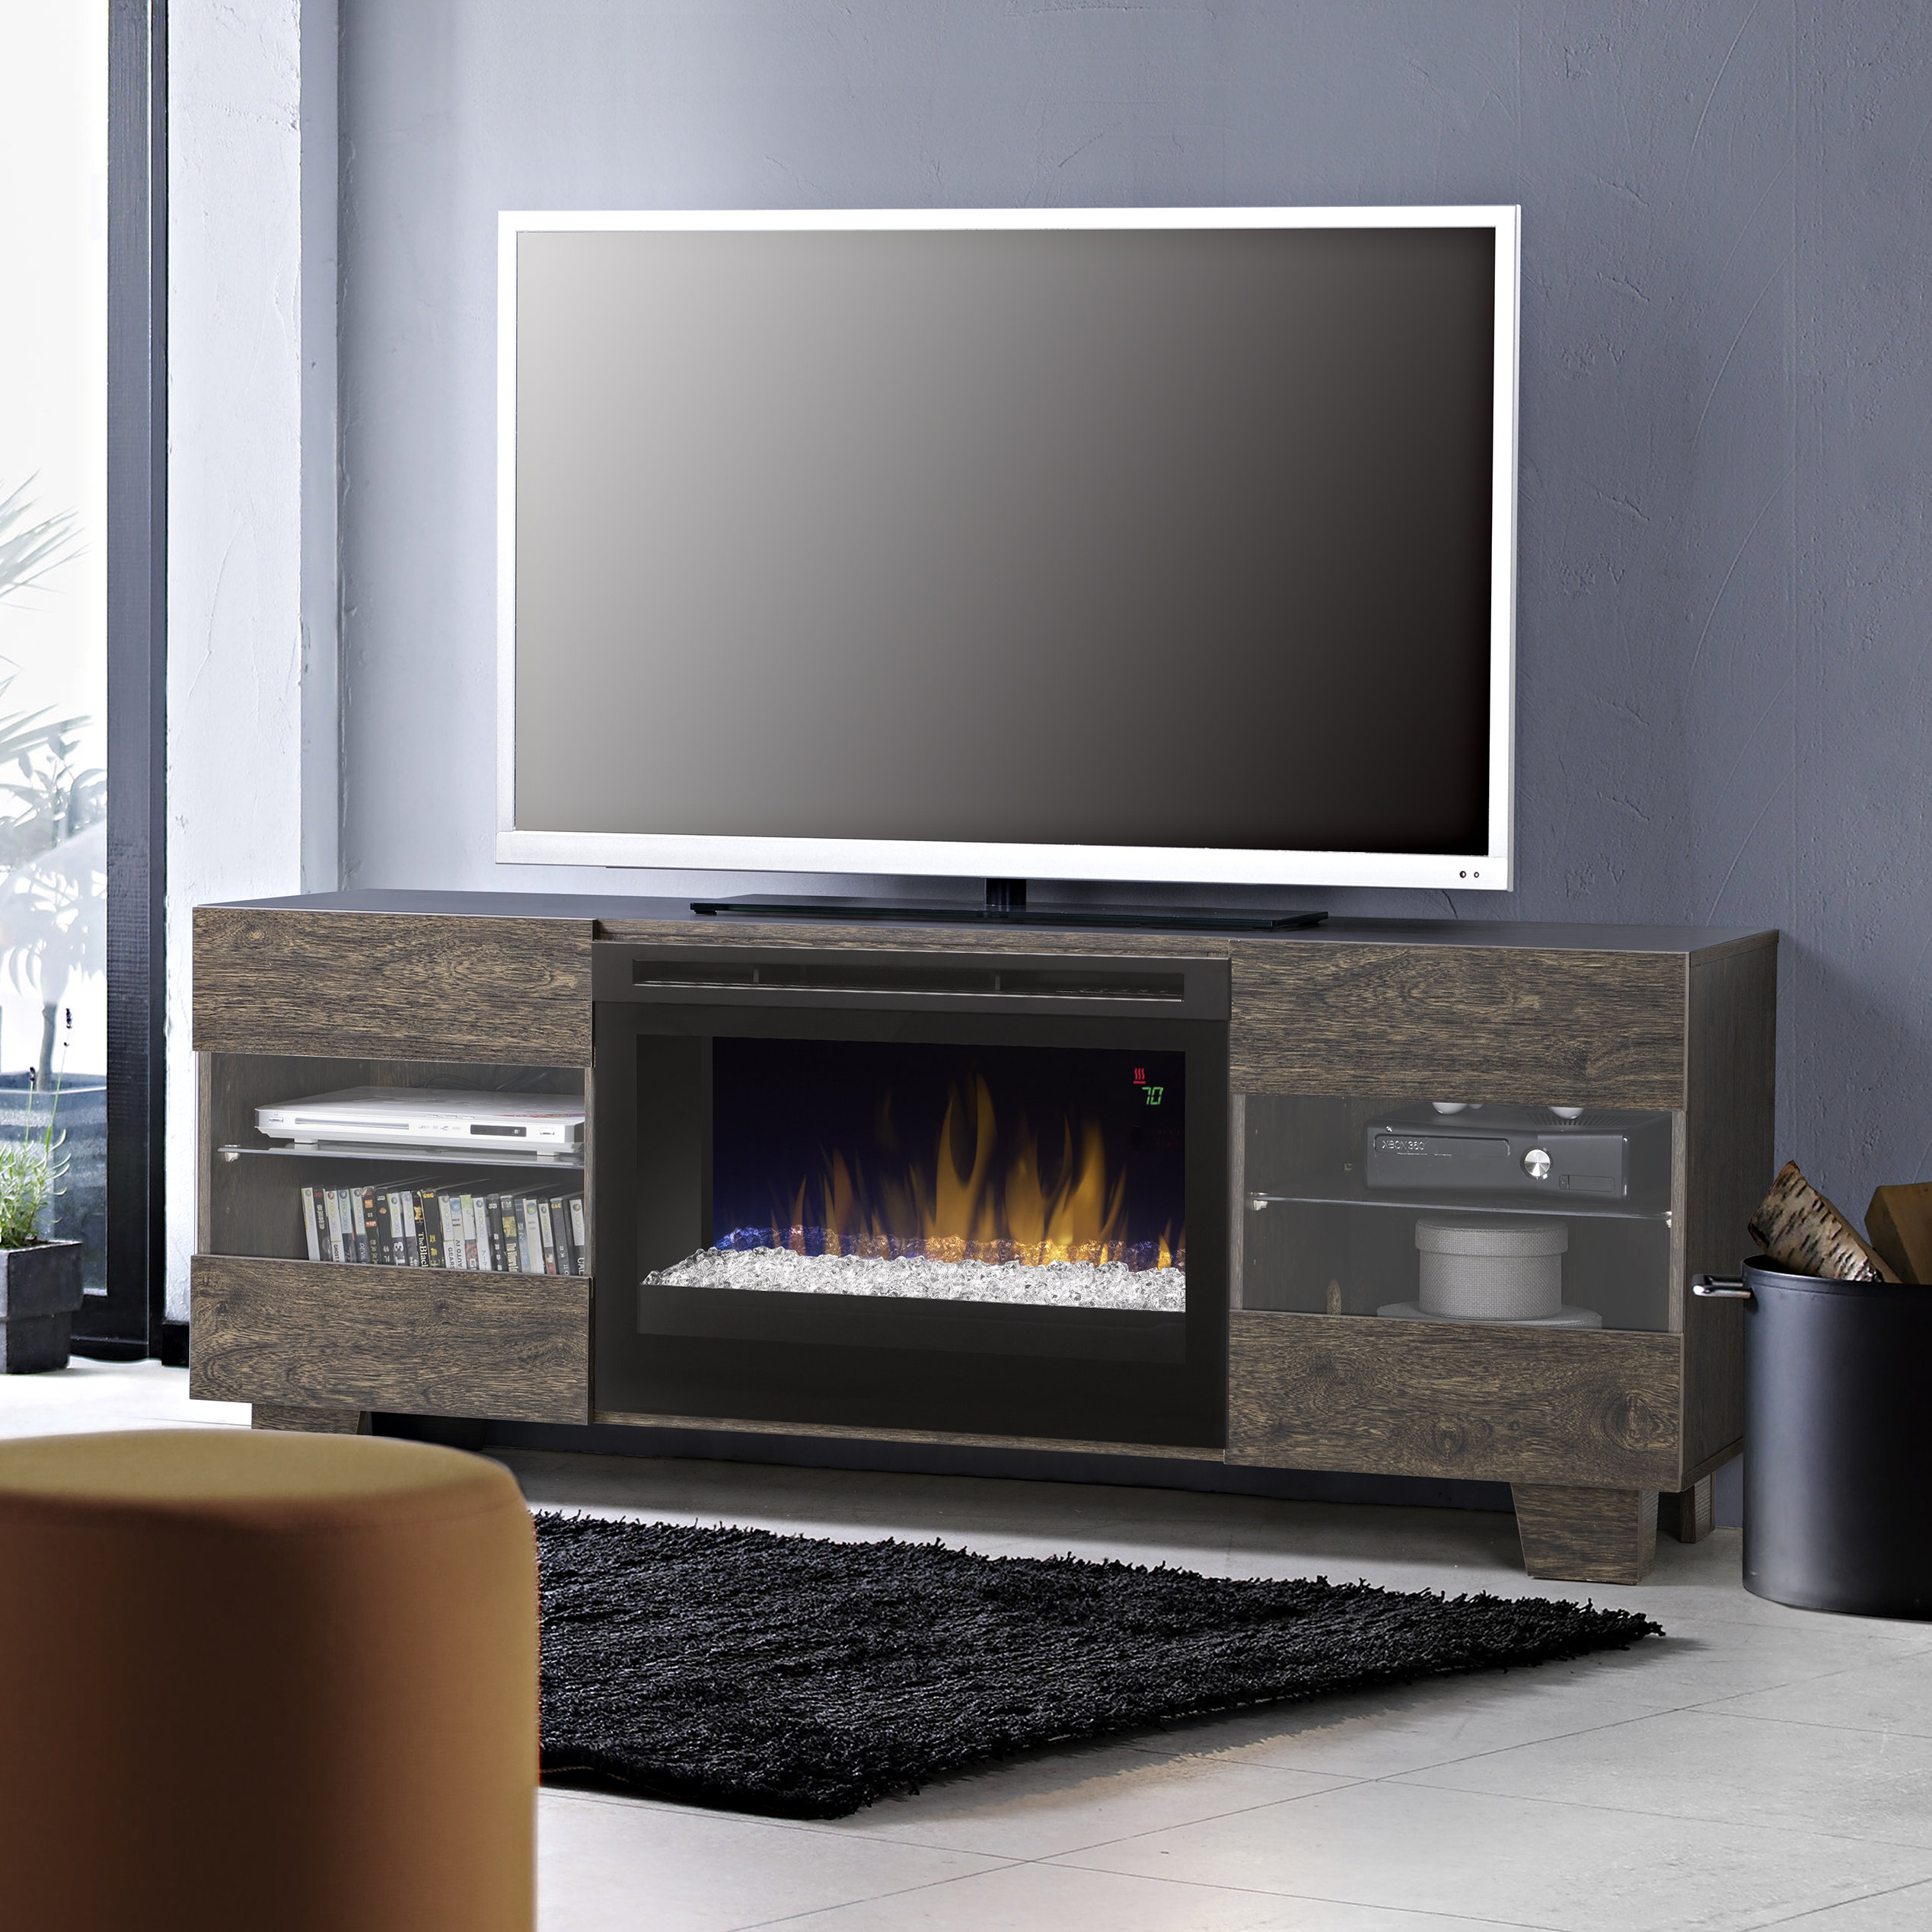 60-69 Inch Tv Stand Fireplaces You'll Love | Wayfair within Caden 63 Inch Tv Stands (Image 4 of 30)